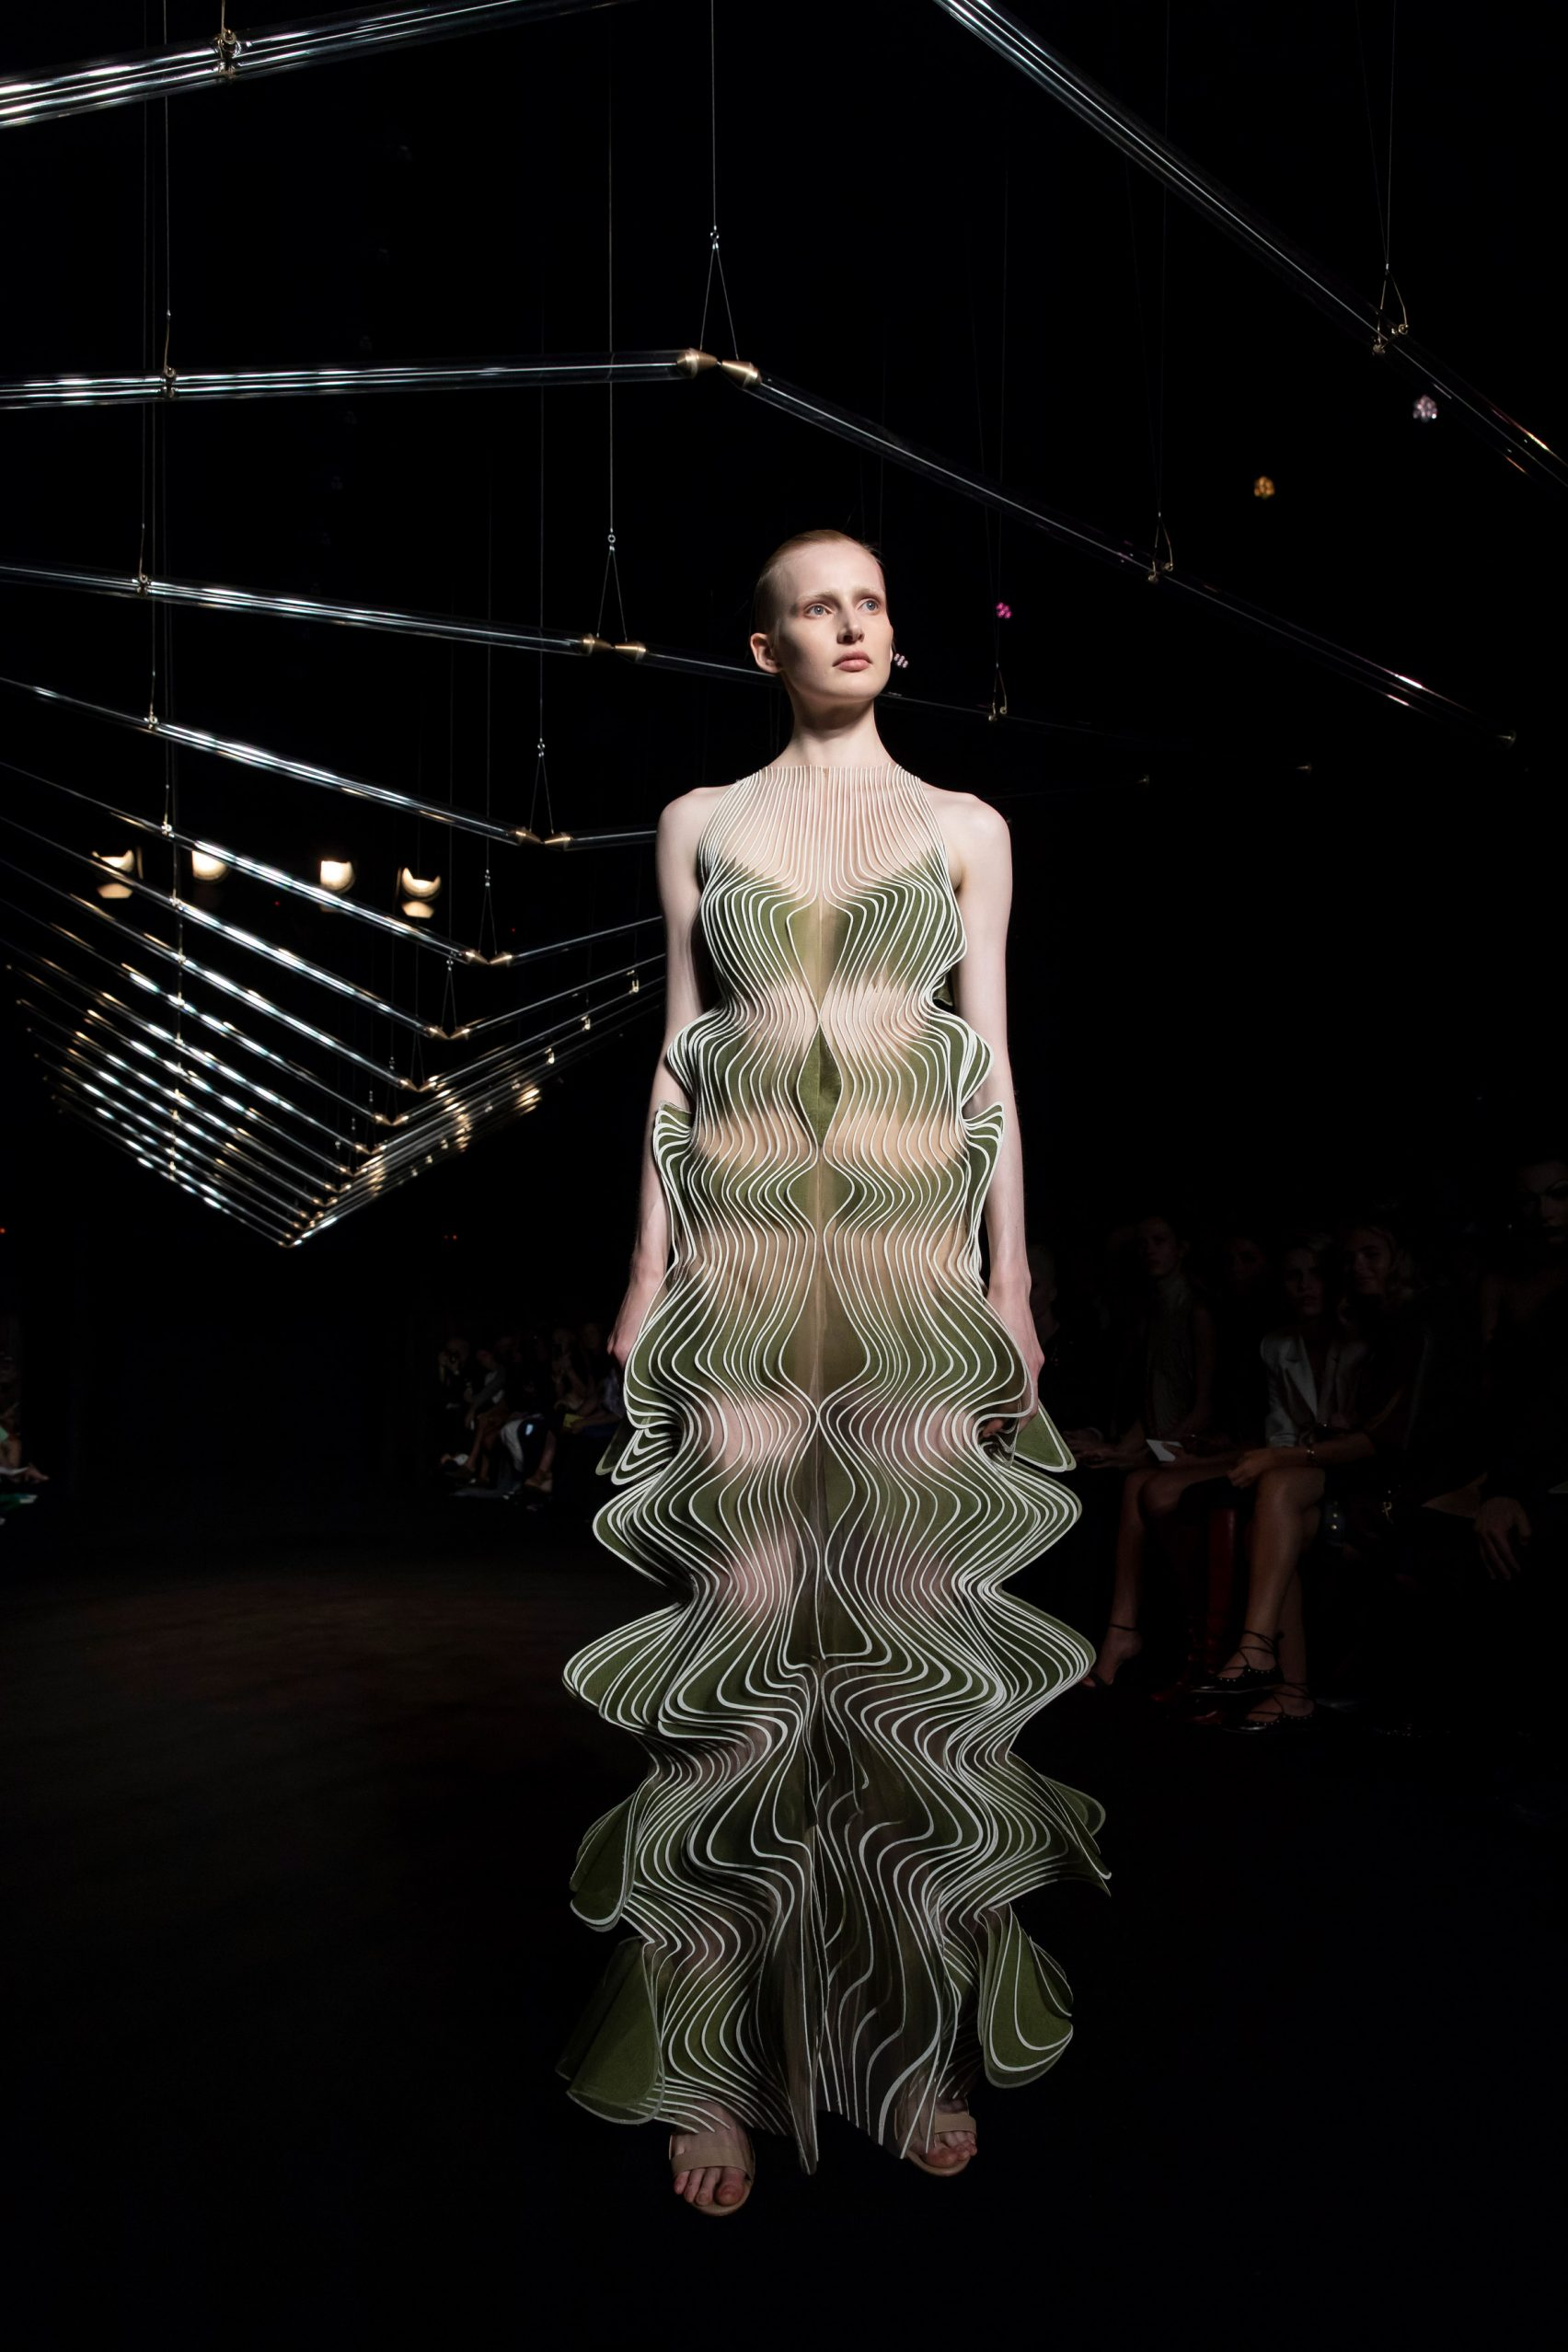 studio-drift-iris-van-herpen-fashion-design_dezeen_2364_col_11-1704x2556